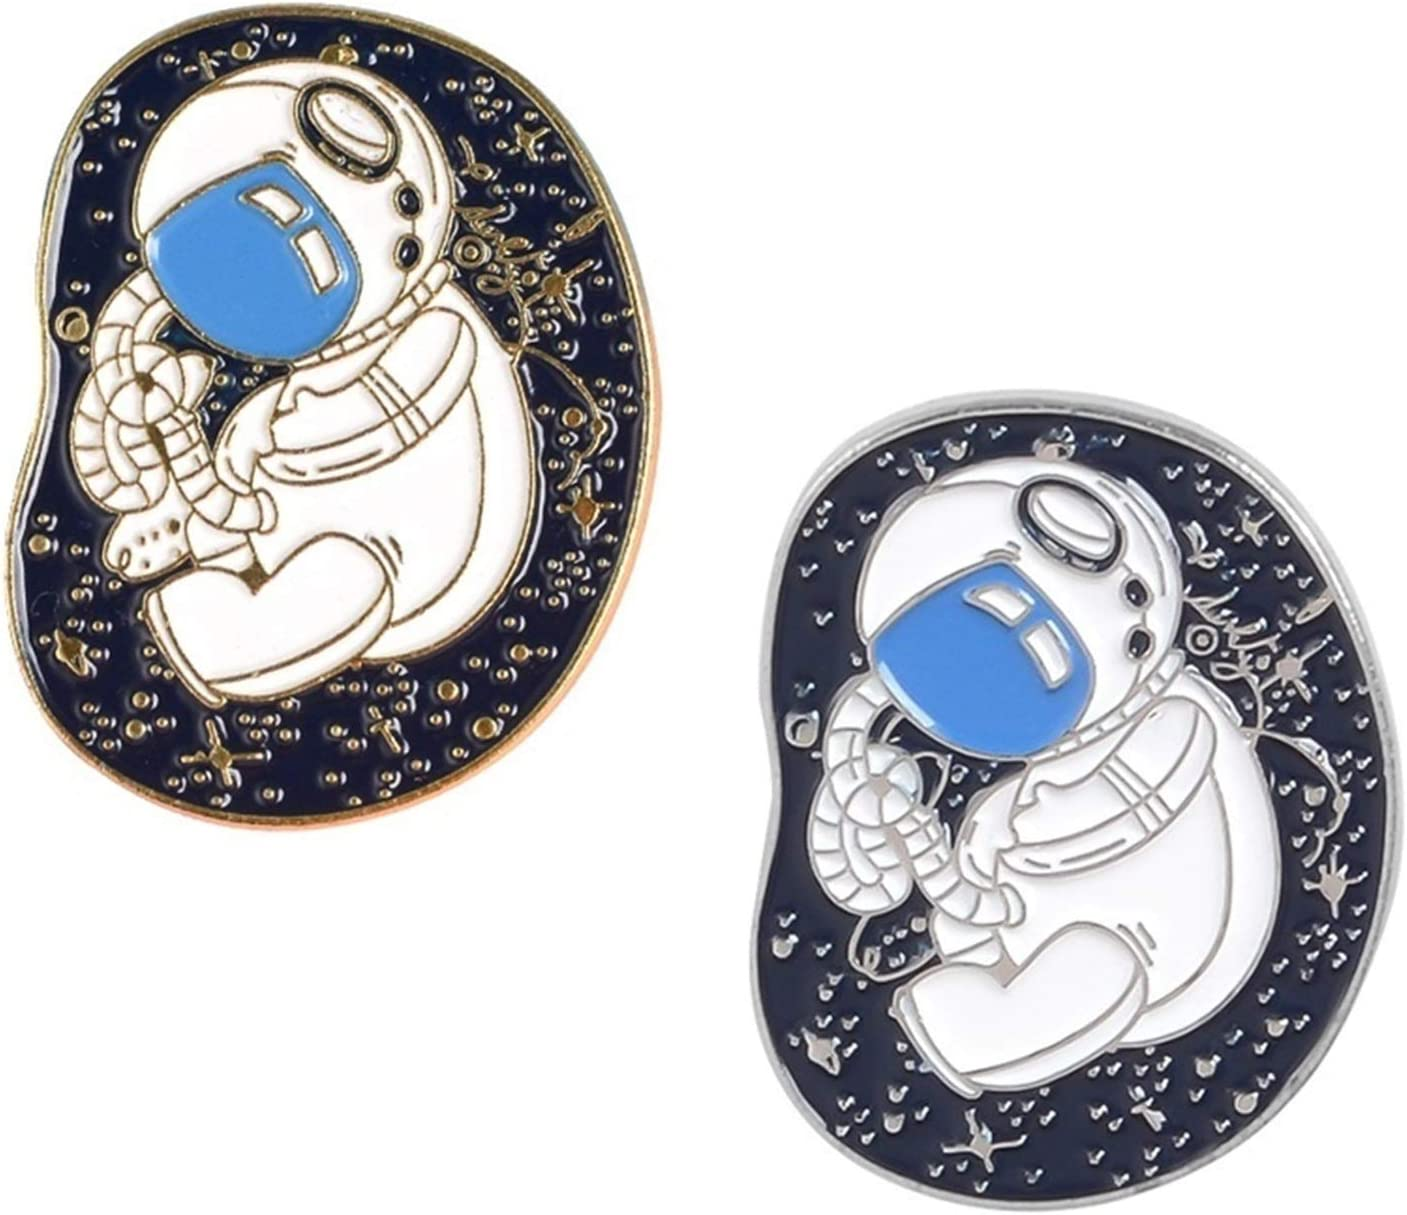 SGHA Space famous Travel Enamel Pin Edition Long Beach Mall Brooches Special Astronauts